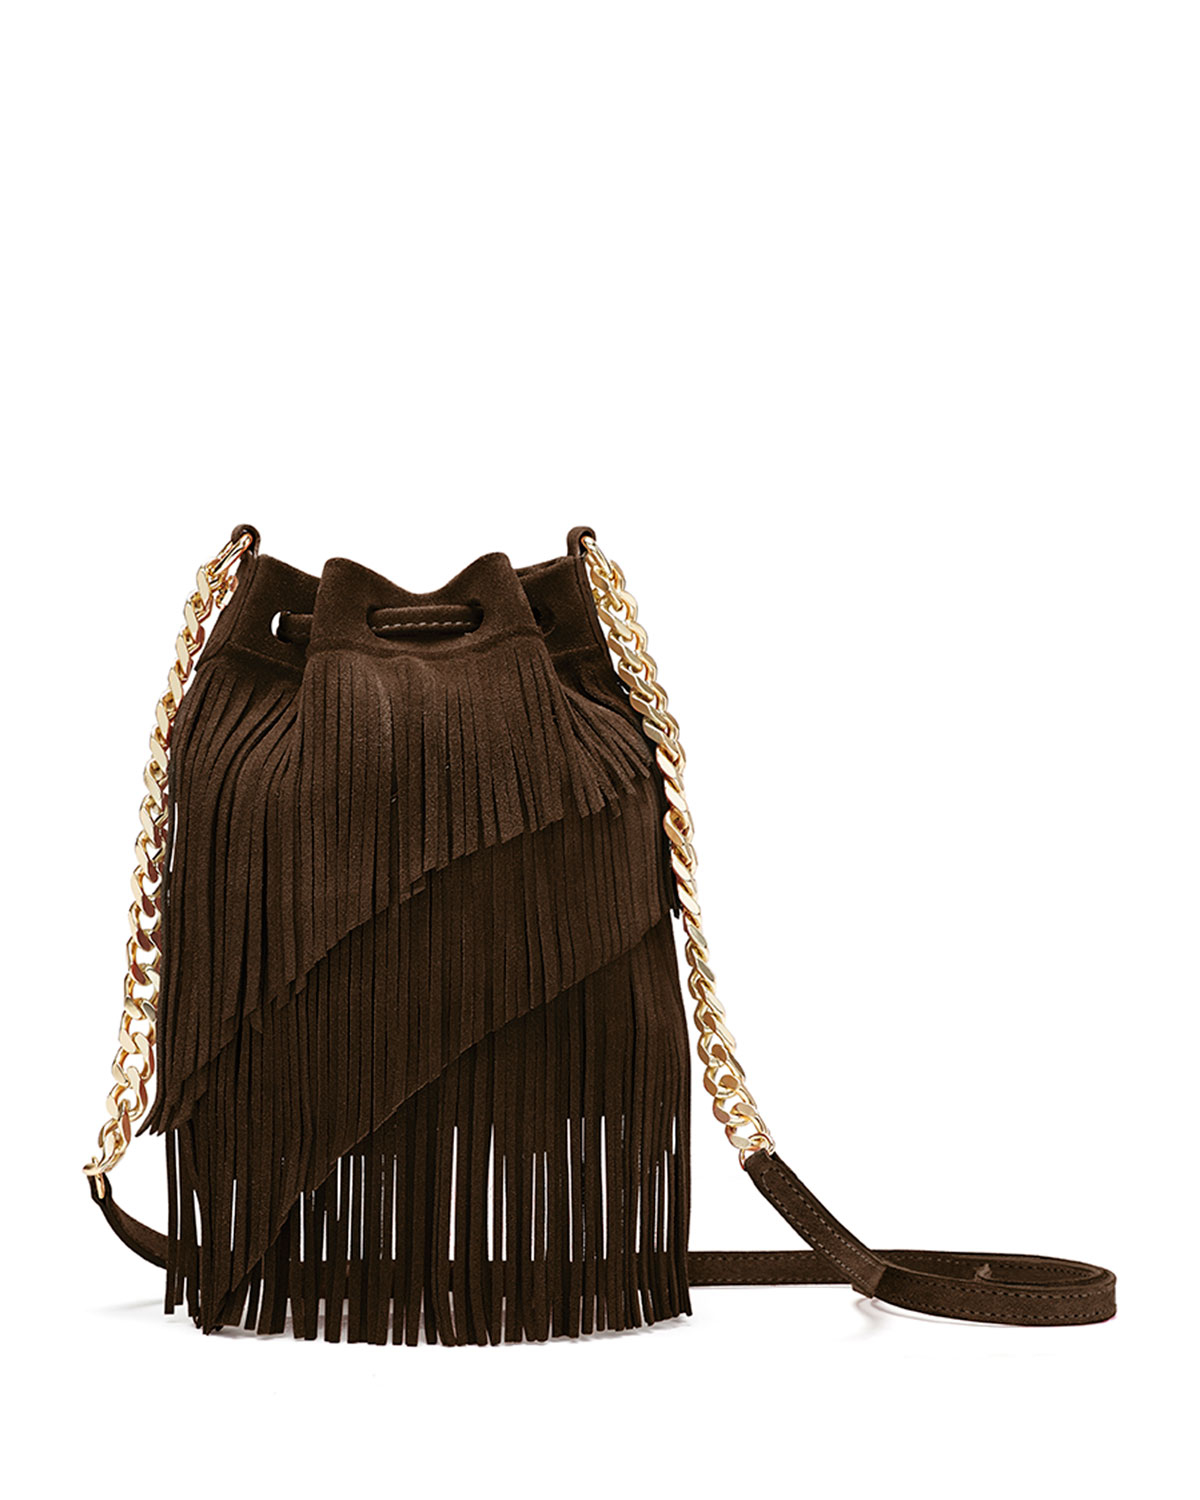 c04a1b25817e Brown Suede Purse With Fringe Best Image Ccdbb. Women Bag ...